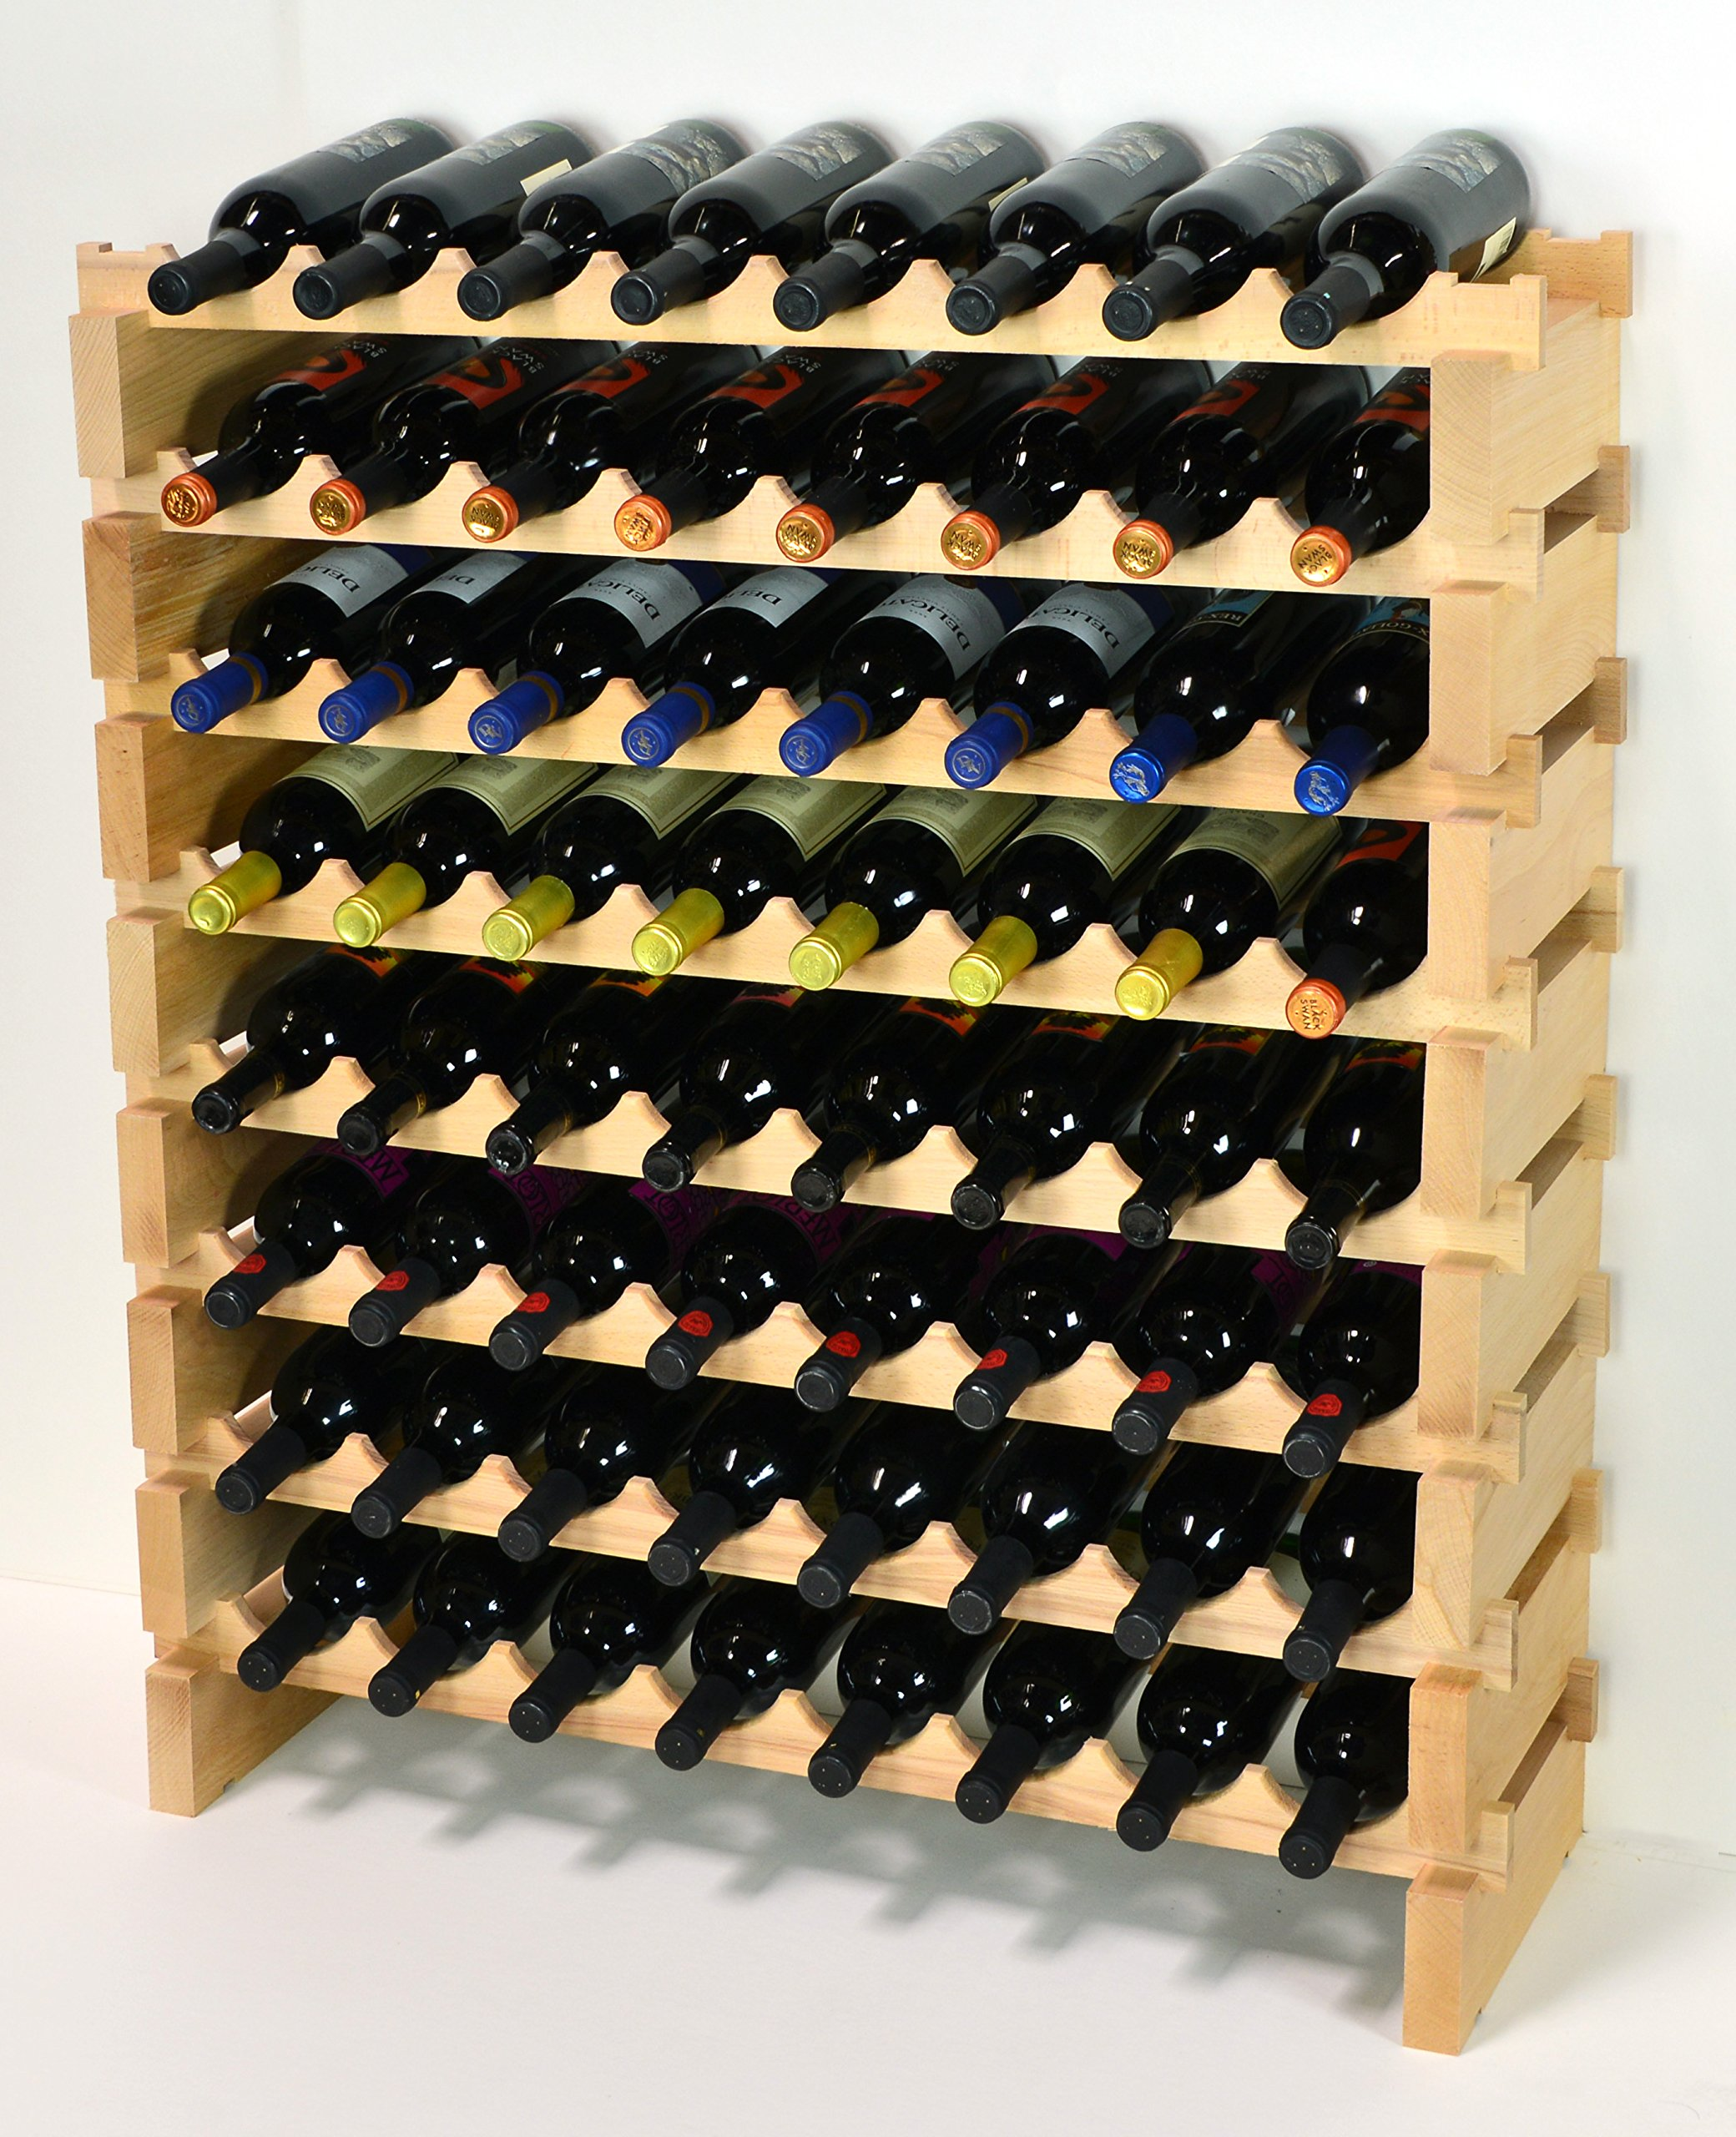 Modular Wine Rack Beechwood 32-96 Bottle Capacity 8 Bottles Across up to 12 Rows Newest Improved Model (64 Bottles - 8 Rows) by sfDisplay.com,LLC.